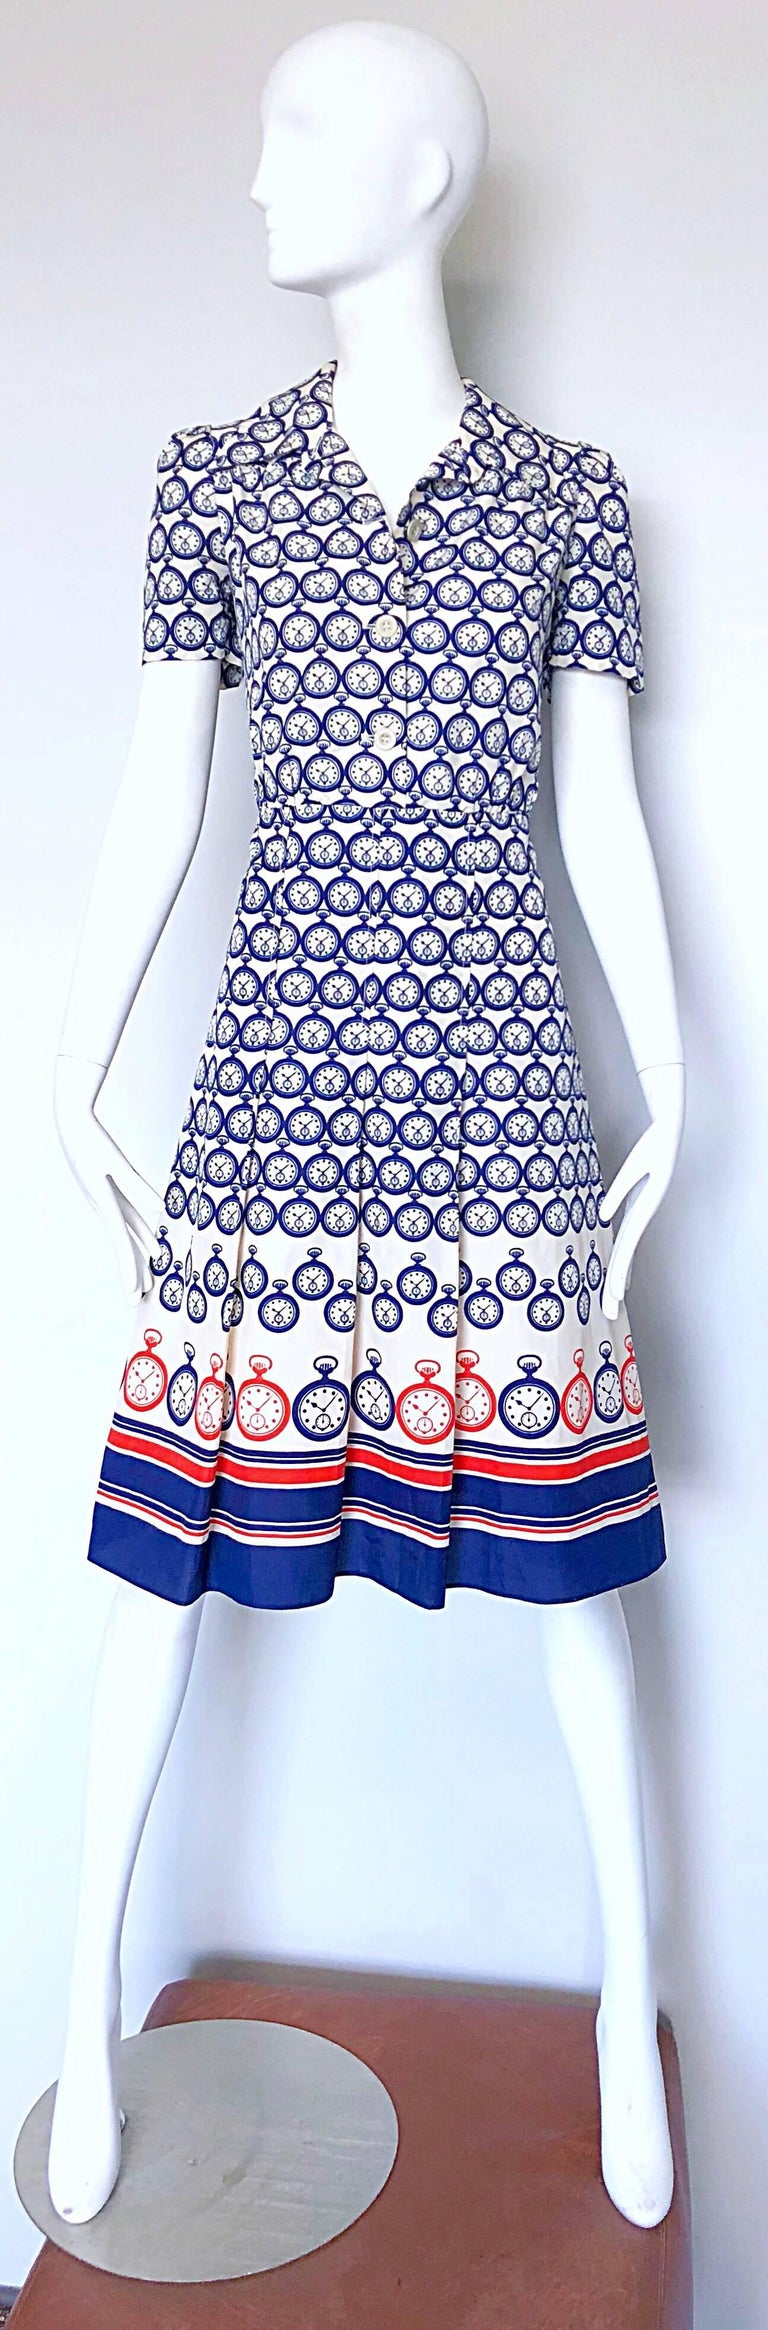 Chic vintage 1950s silk novelty pocket watch print silk fit n' flare nautical shirt dress! Features pocket watches printed throughout in red, white and navy blue. Buttons up the front with hidden zipper up the side. The possibilities are endless